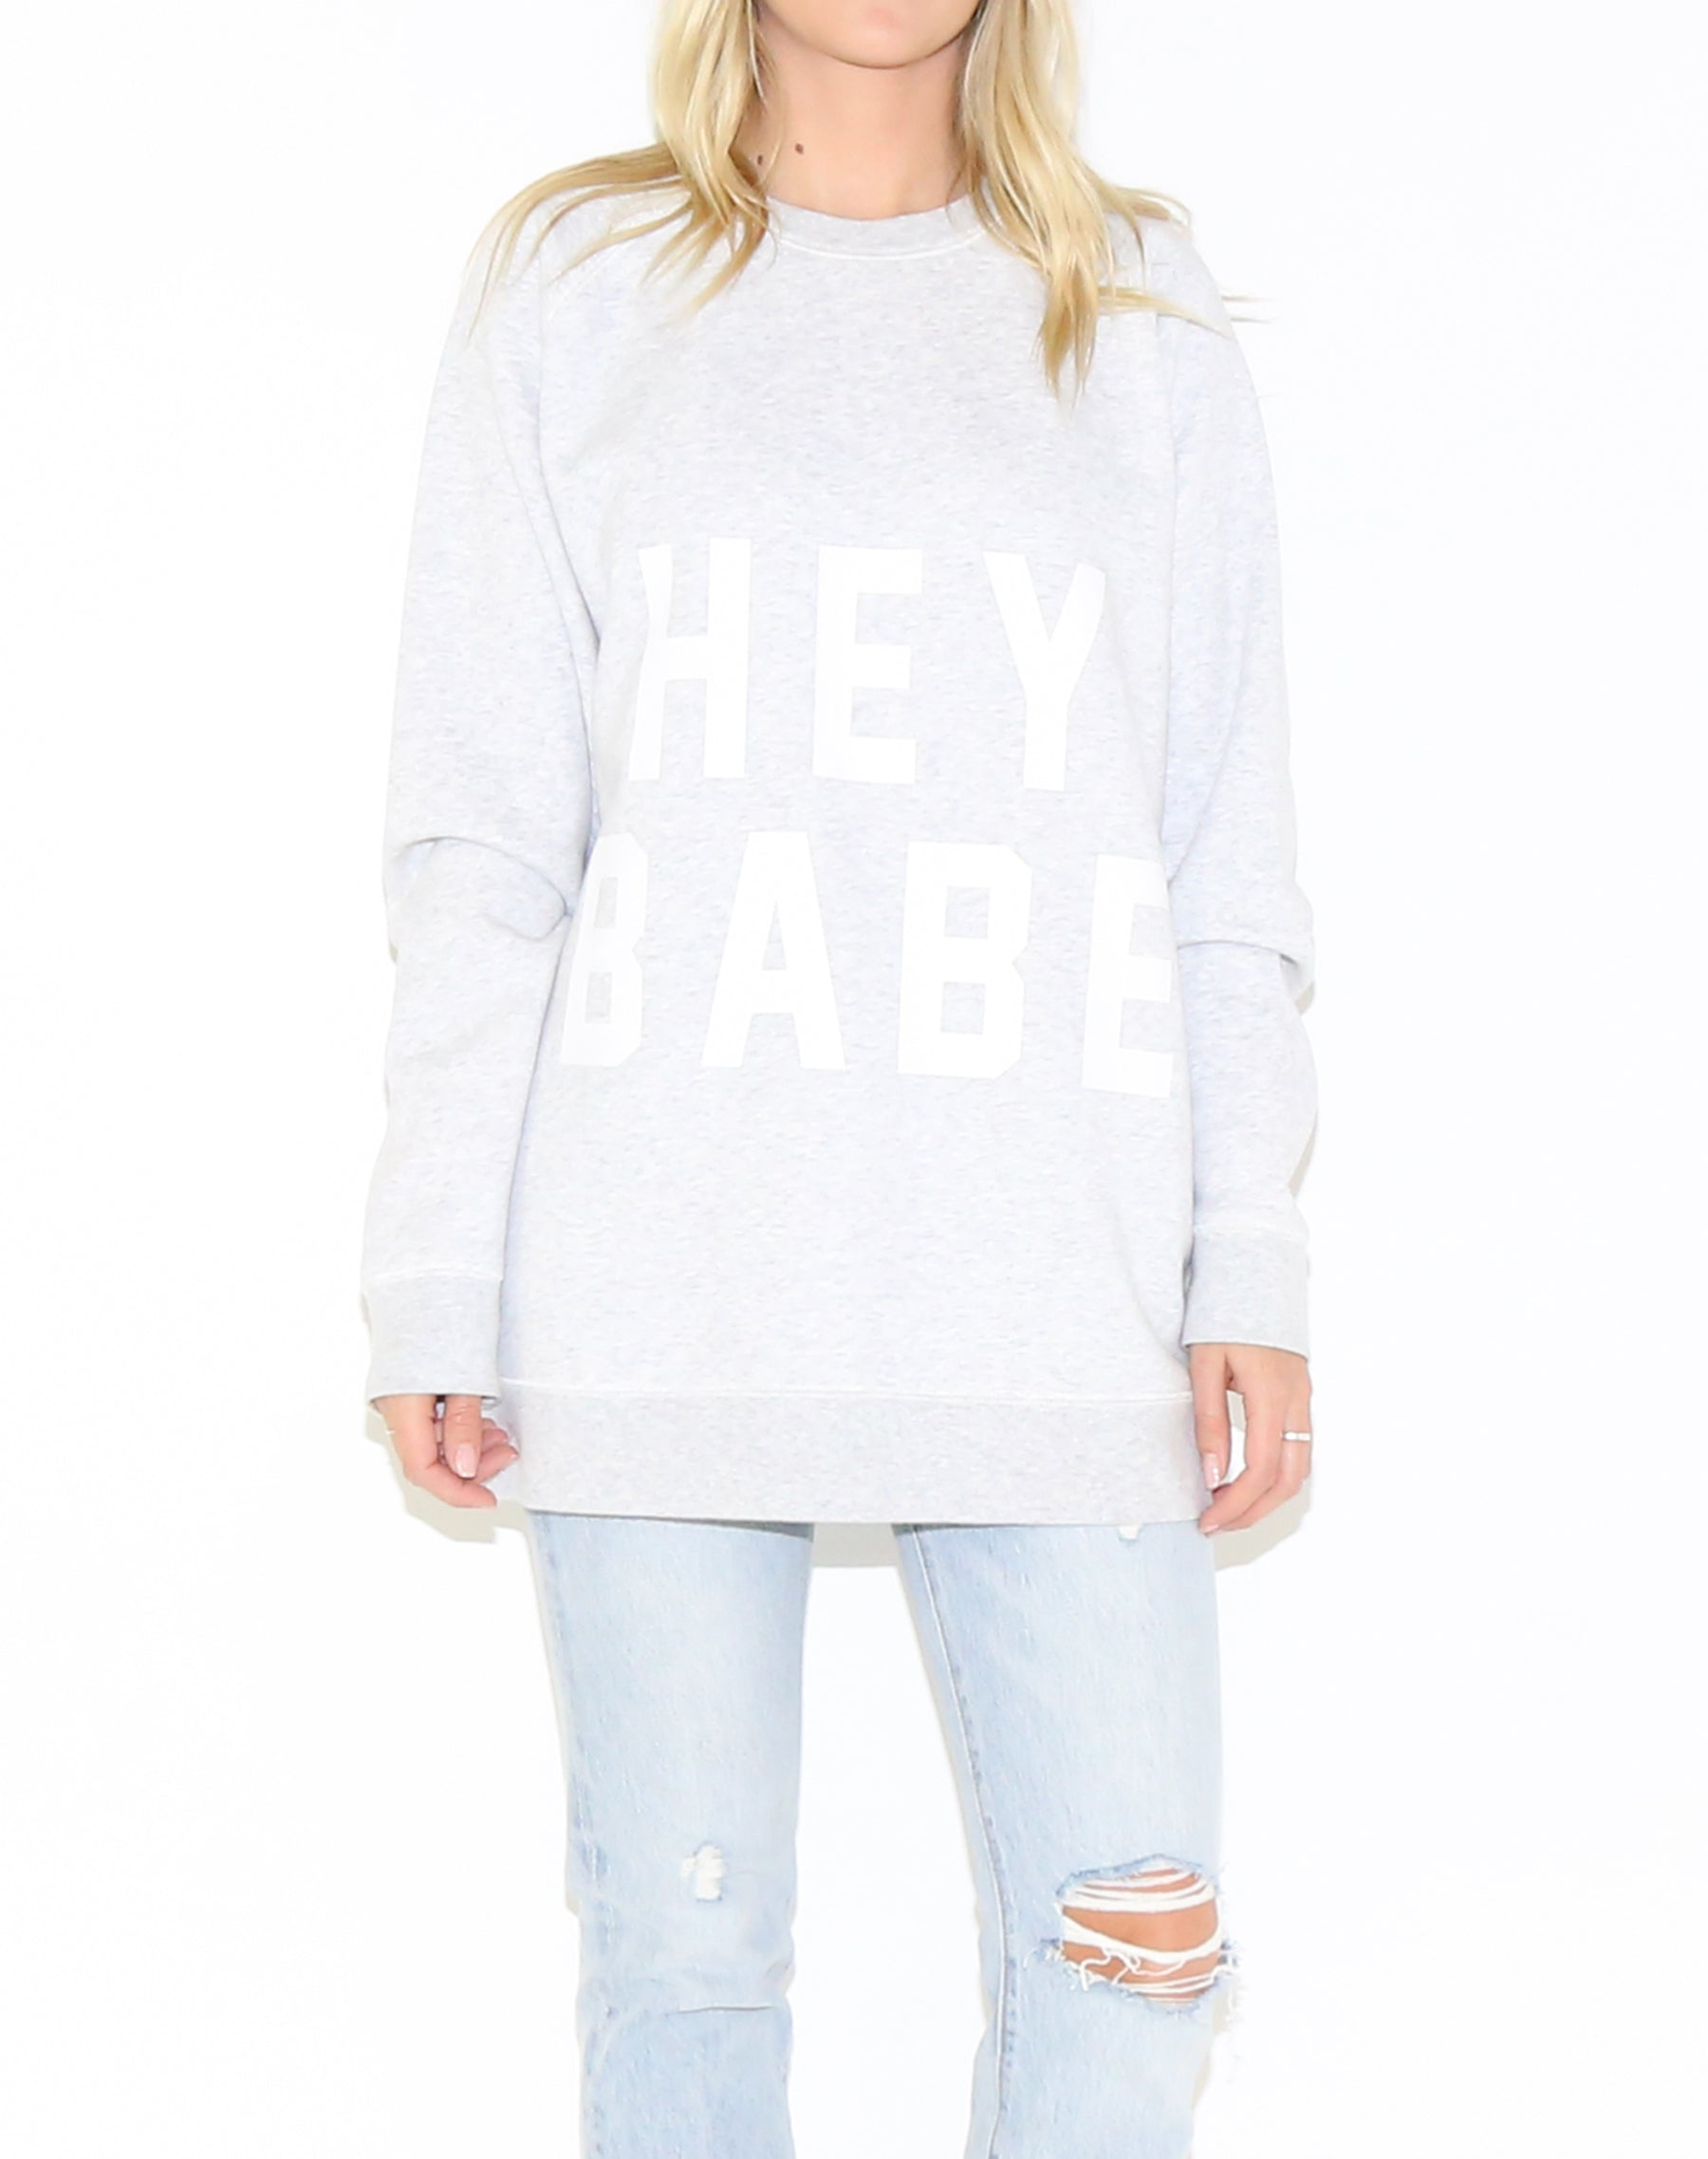 Photo 2 of the Hey Babe big sister crew neck sweatshirt in pebble grey by Brunette the Label.